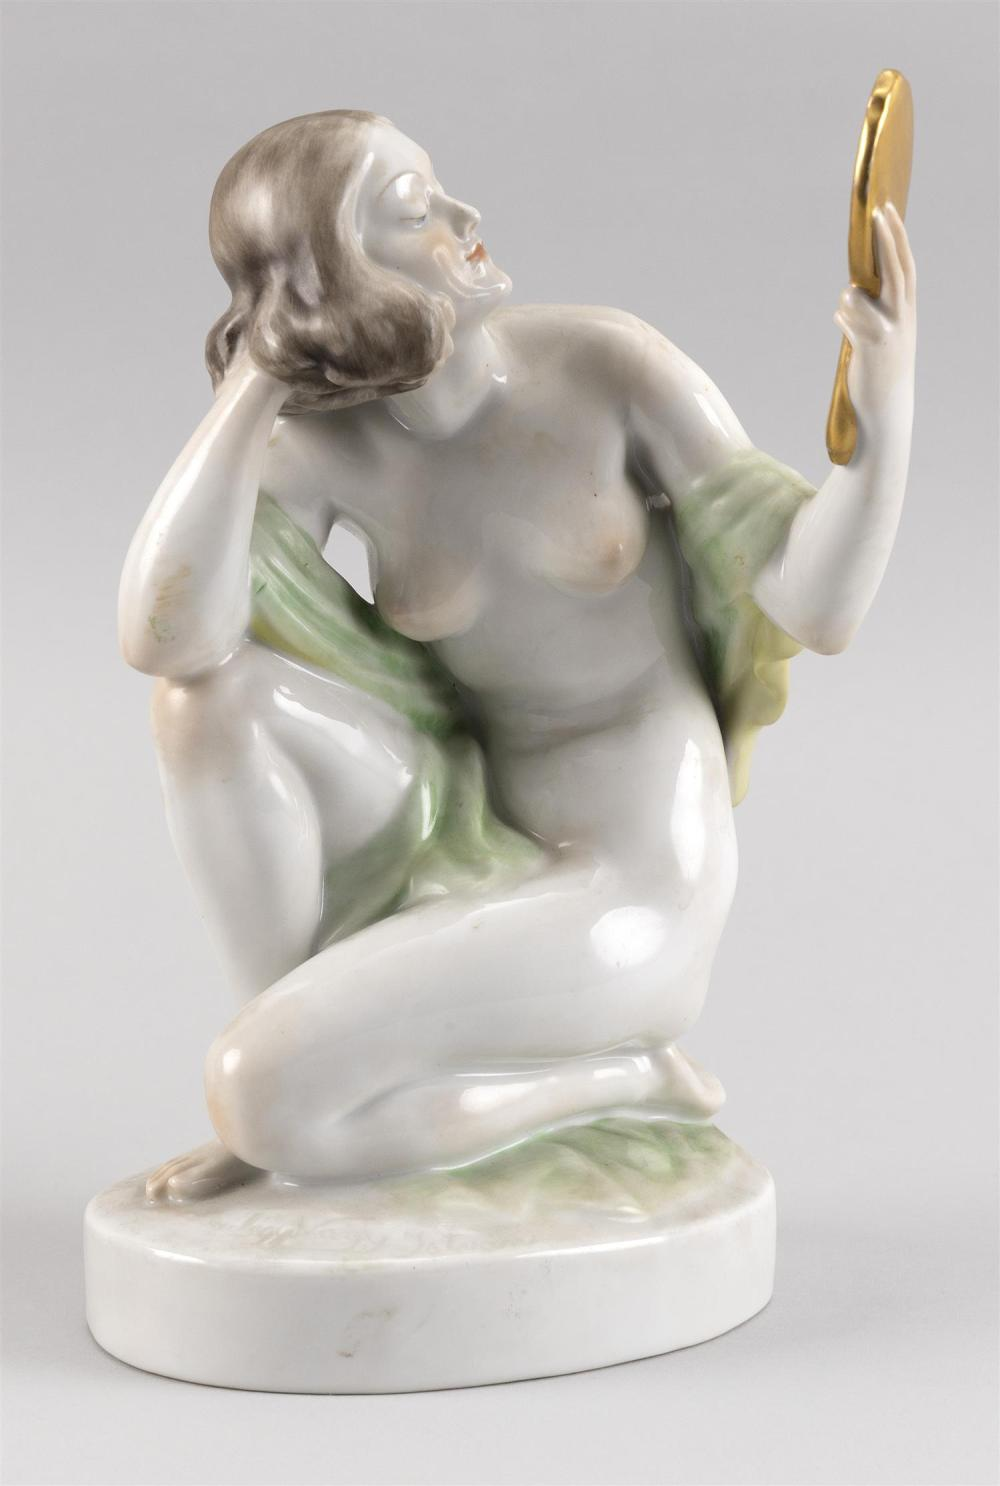 """HEREND PORCELAIN FIGURE OF A NUDE WOMAN HOLDING A MIRROR Factory marks and numbered 5724. Height 9.25""""."""